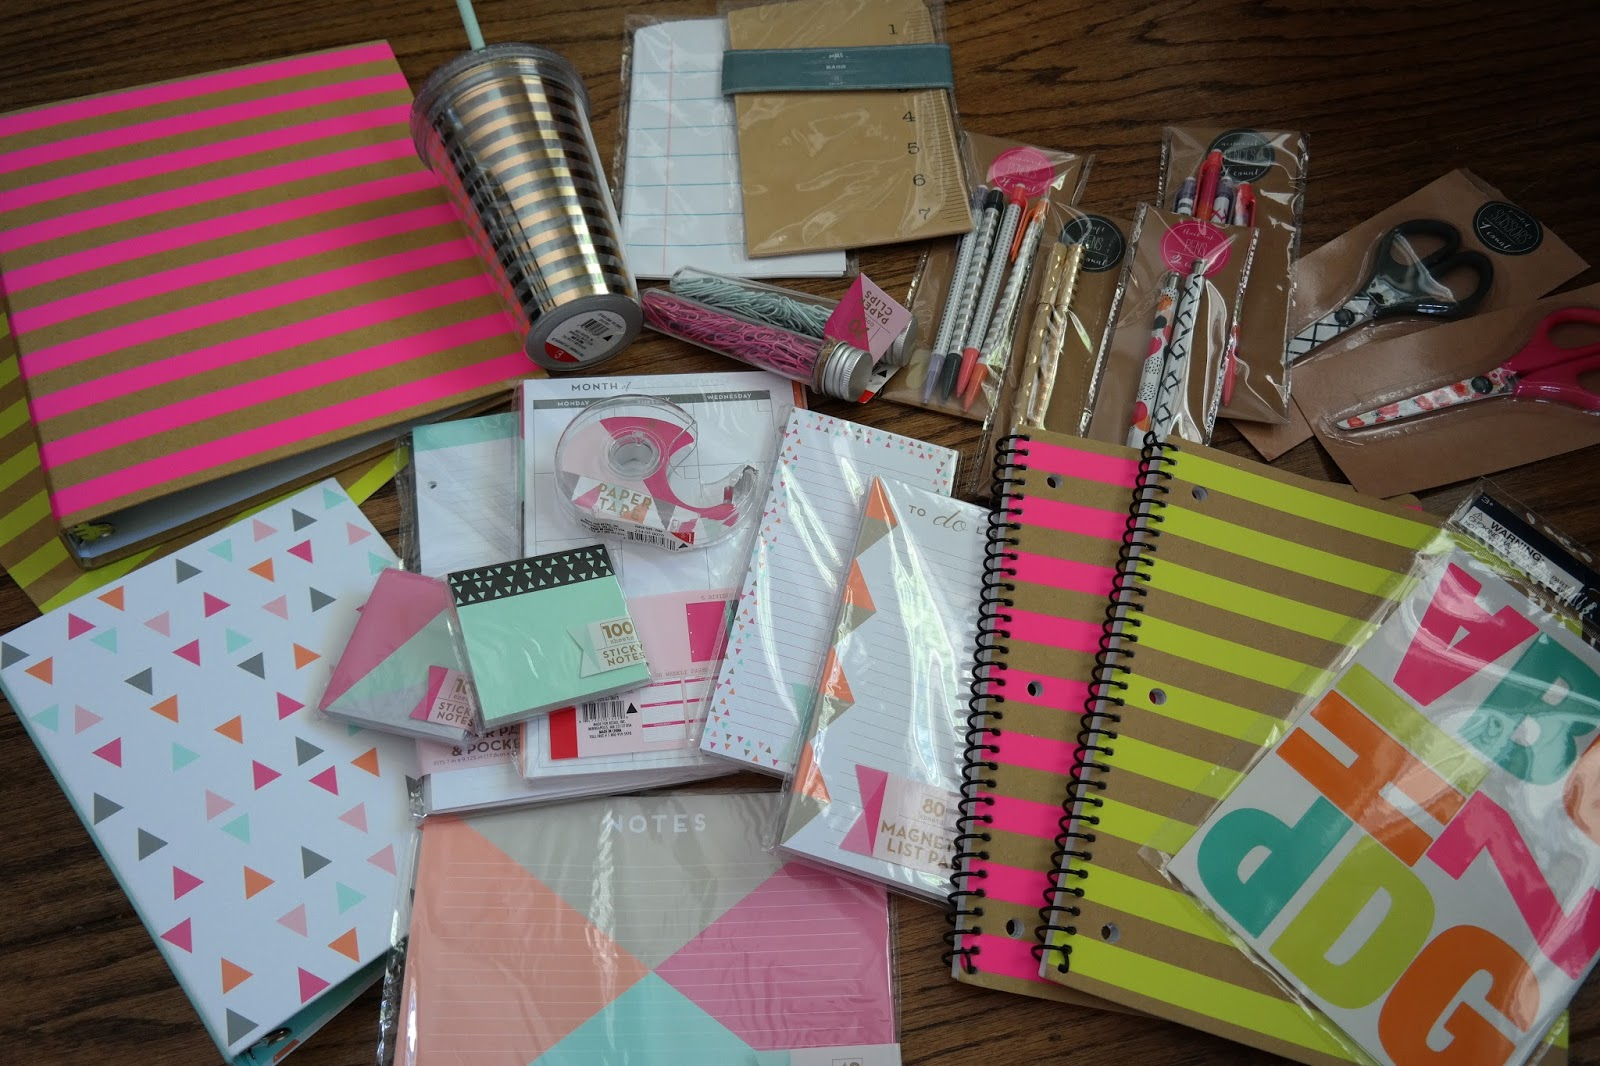 Calendar Planner Target : Artful play: doll projects & planner target haul